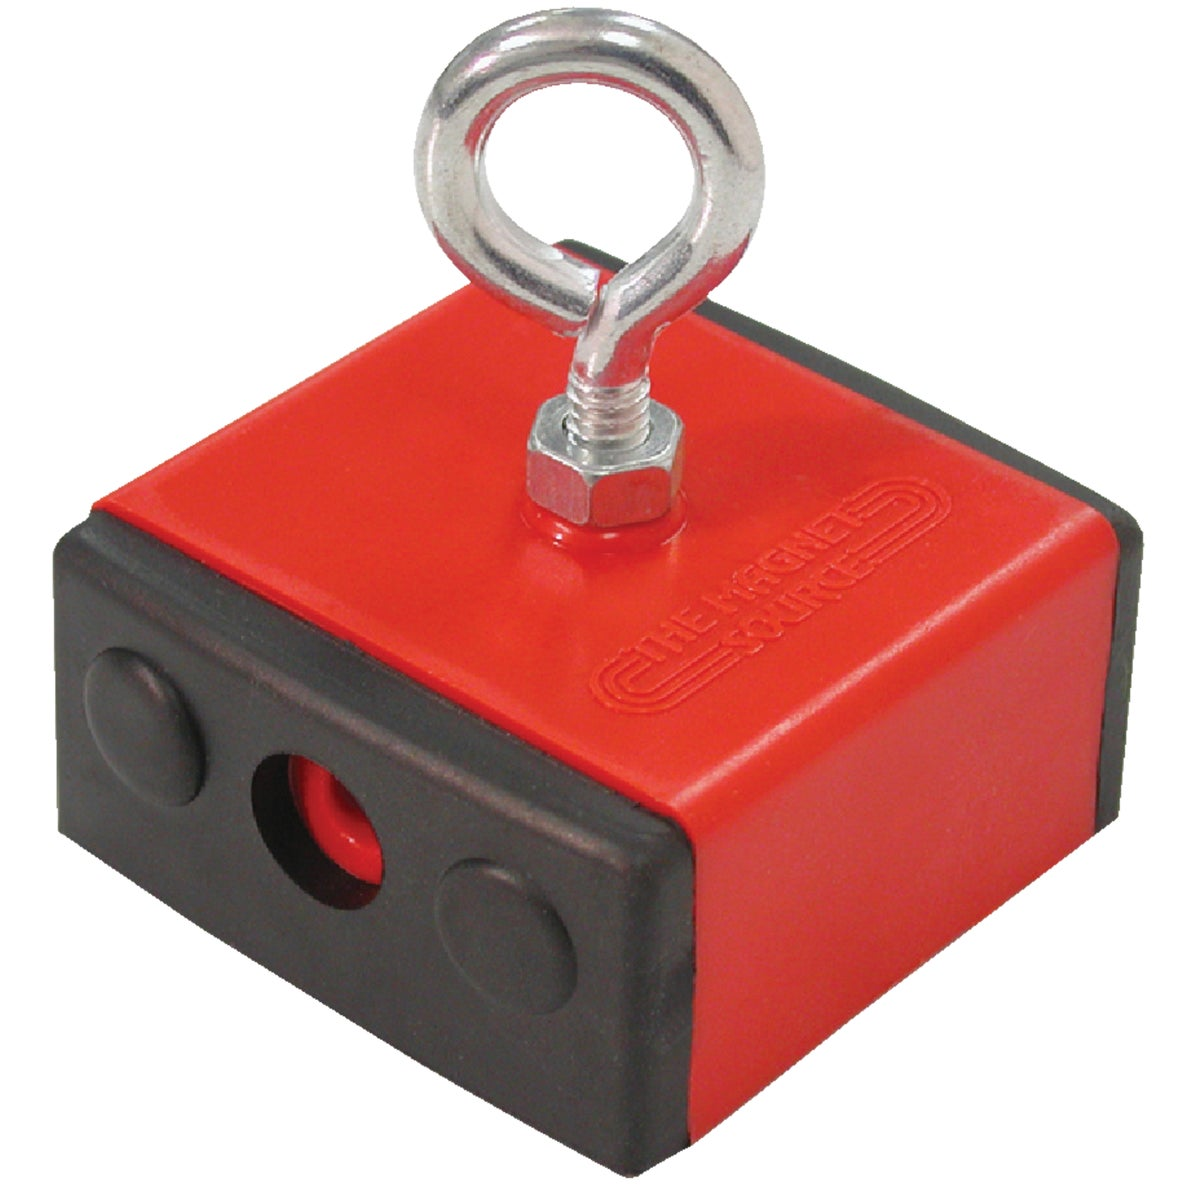 100LB RETRIEVING MAGNET - 07503 by Master Magnetics